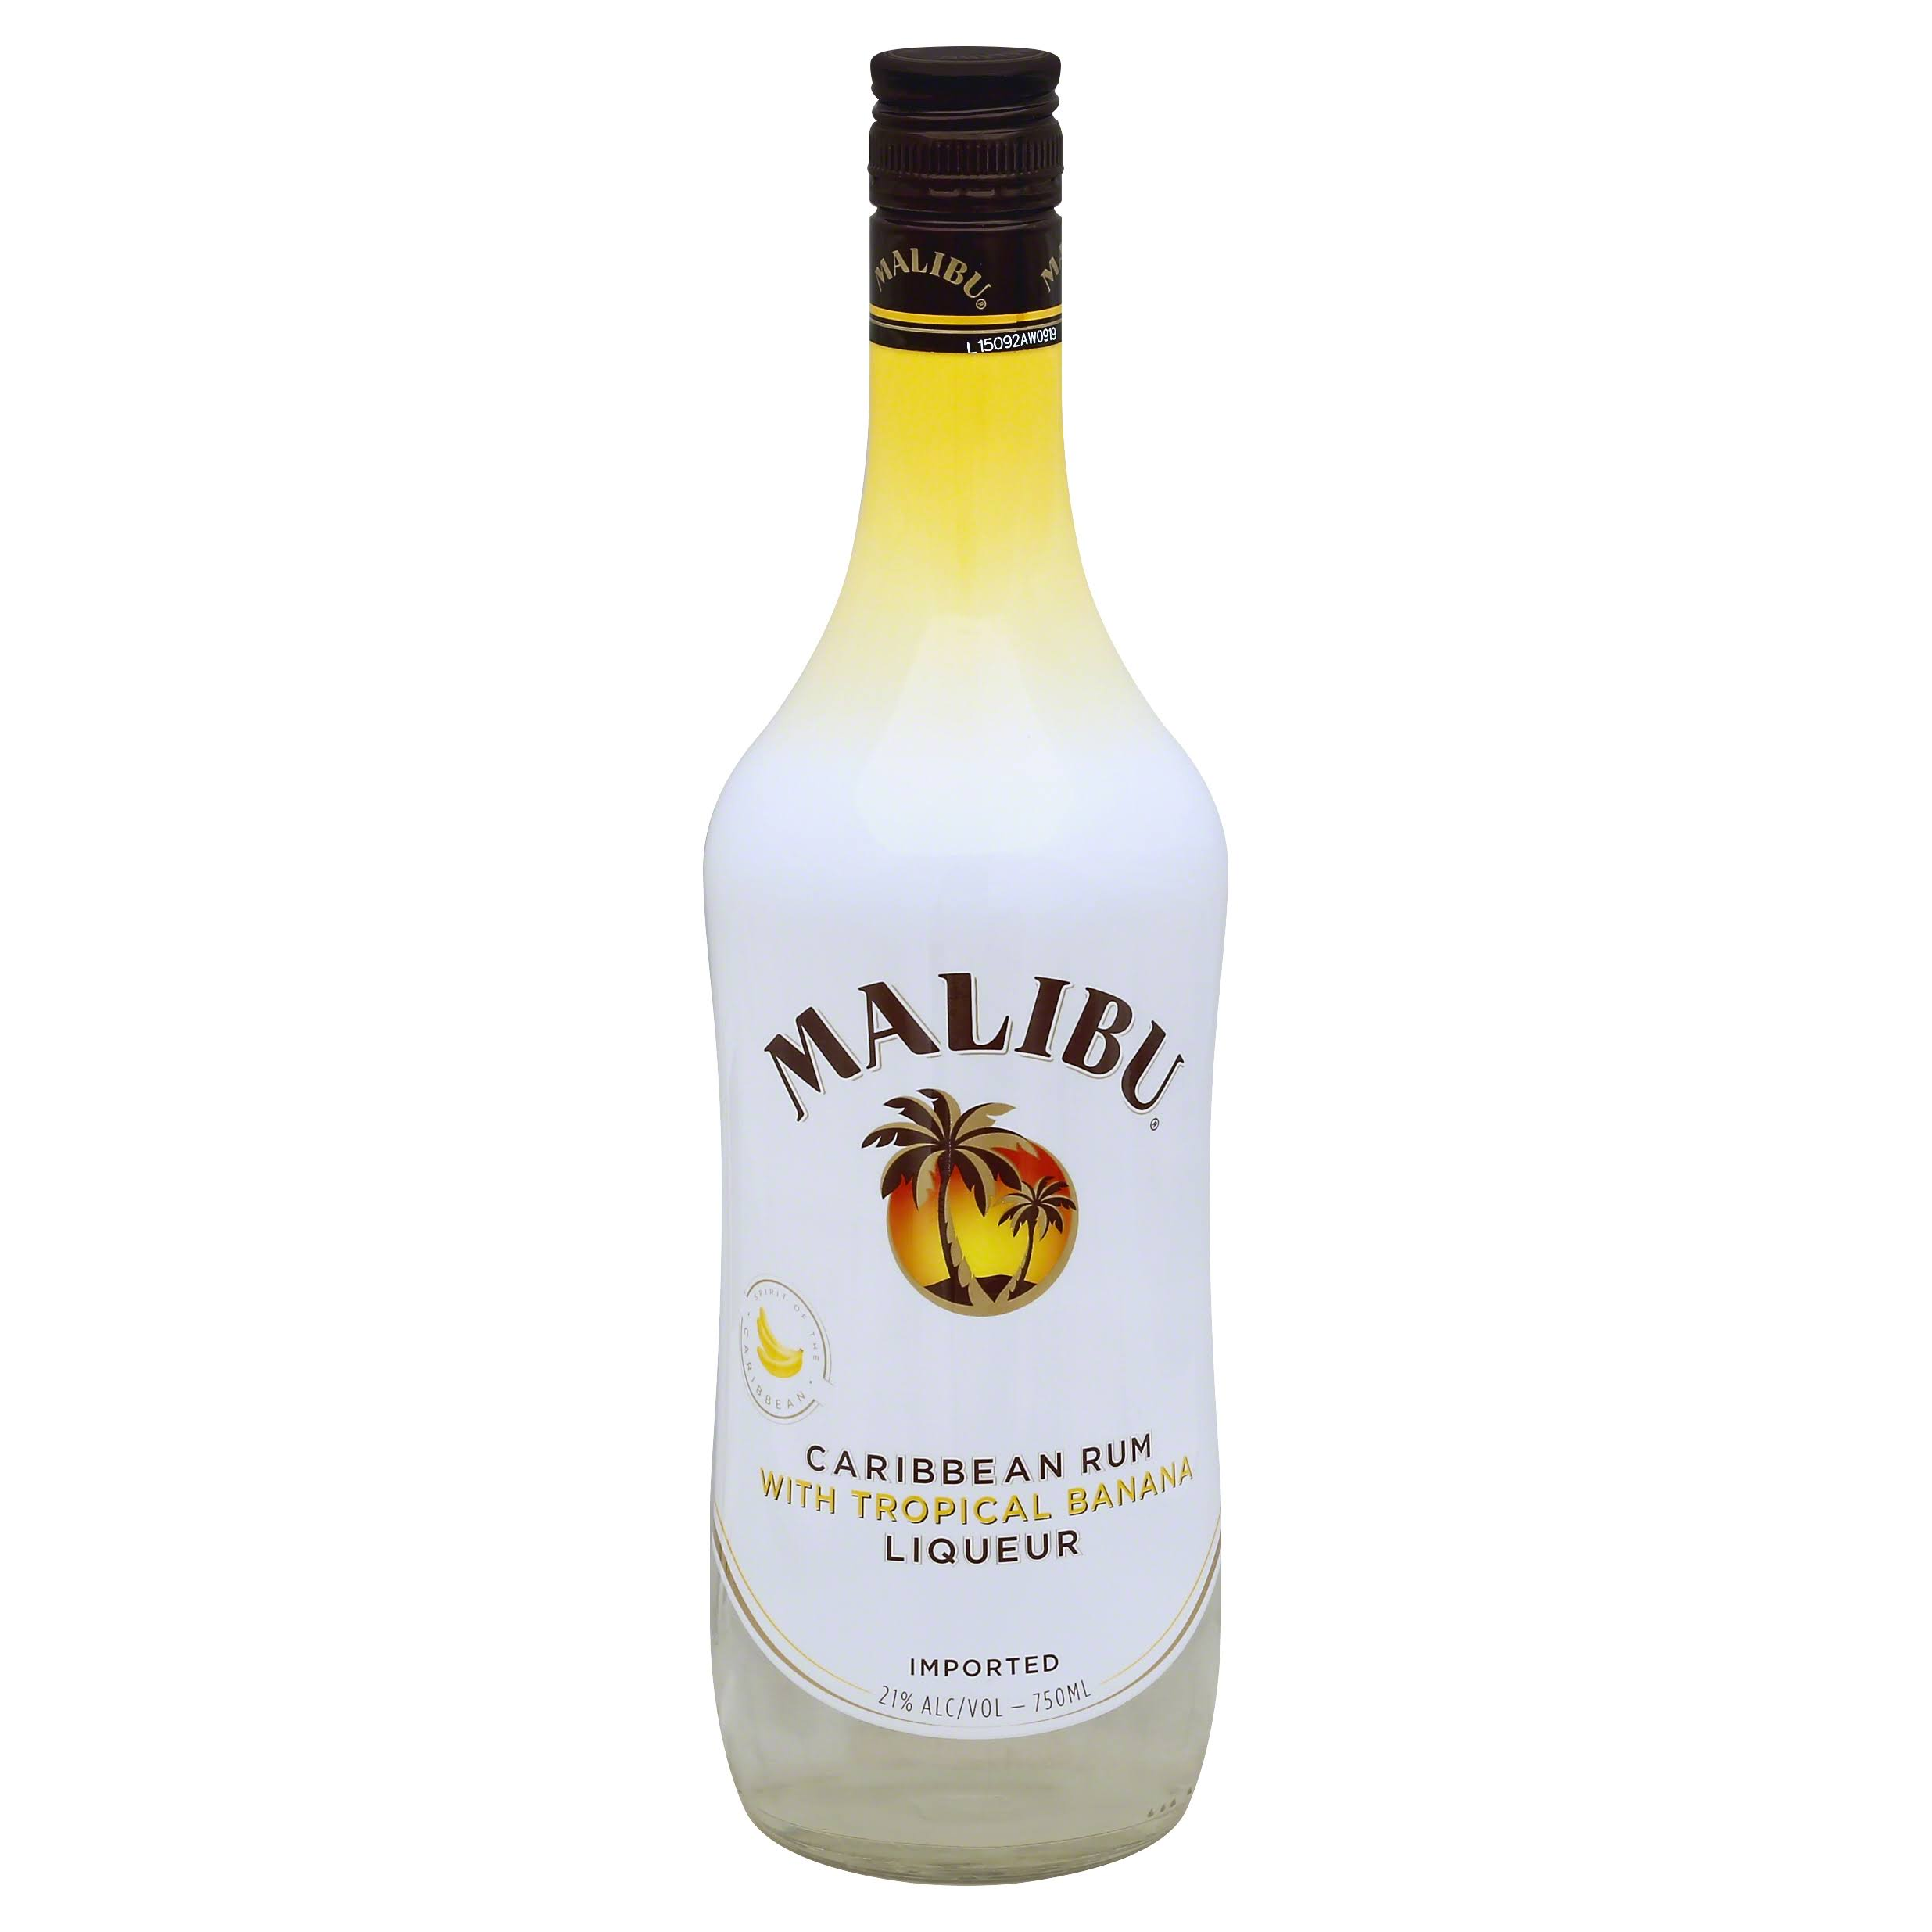 Malibu Caribbean Rum - Tropical Banana, 750ml